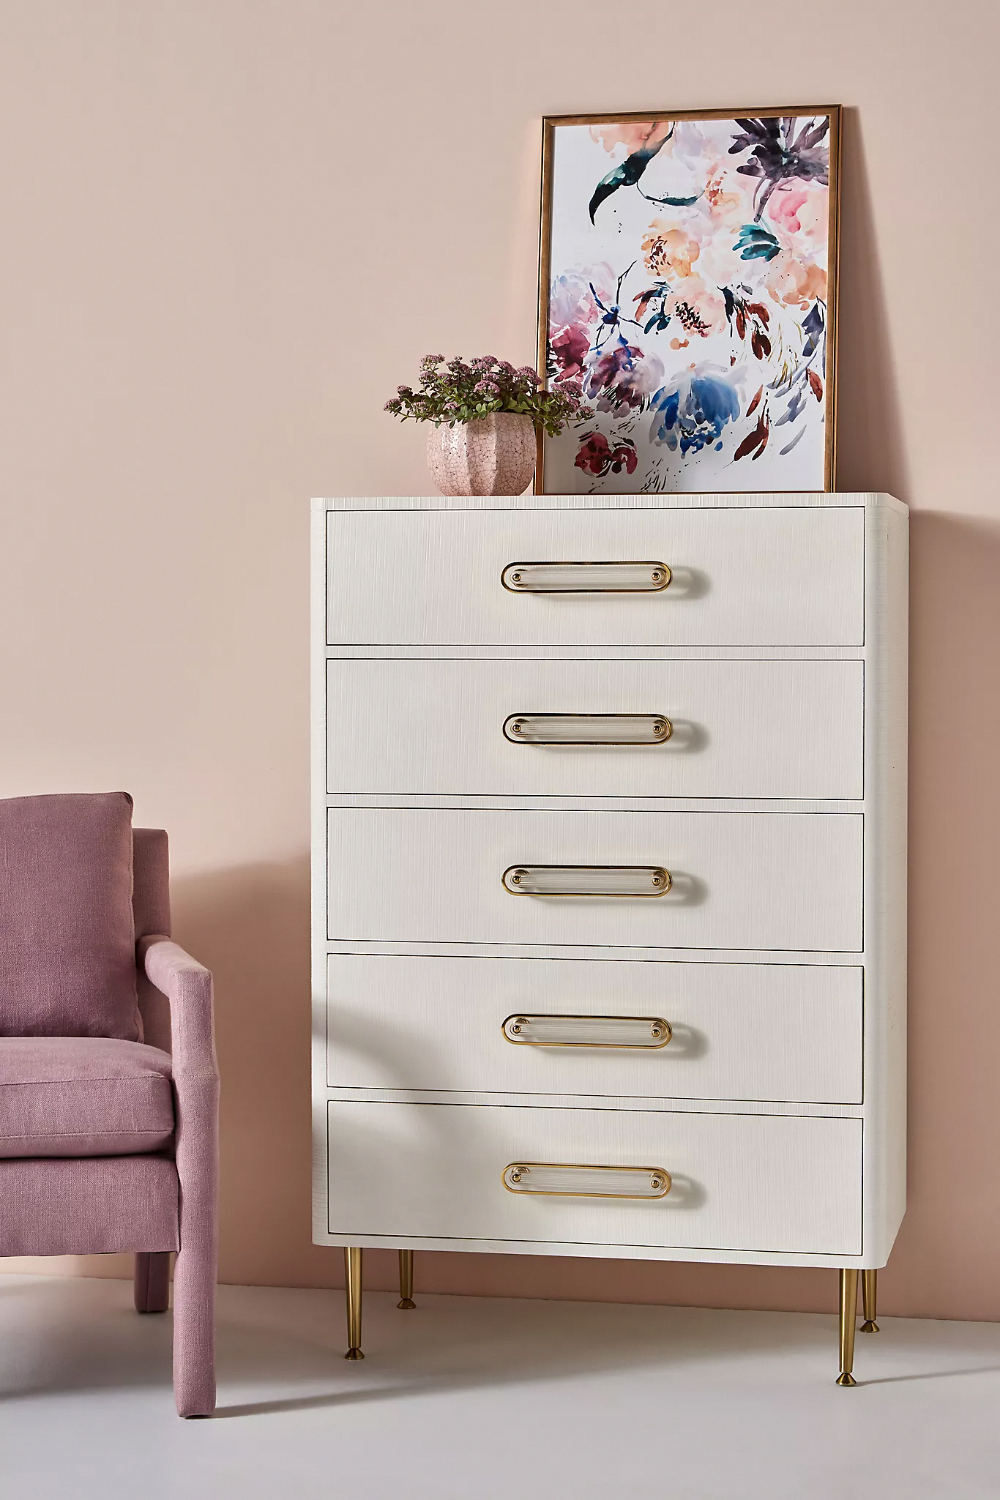 This girls bedroom furniture is genuinely a superb design